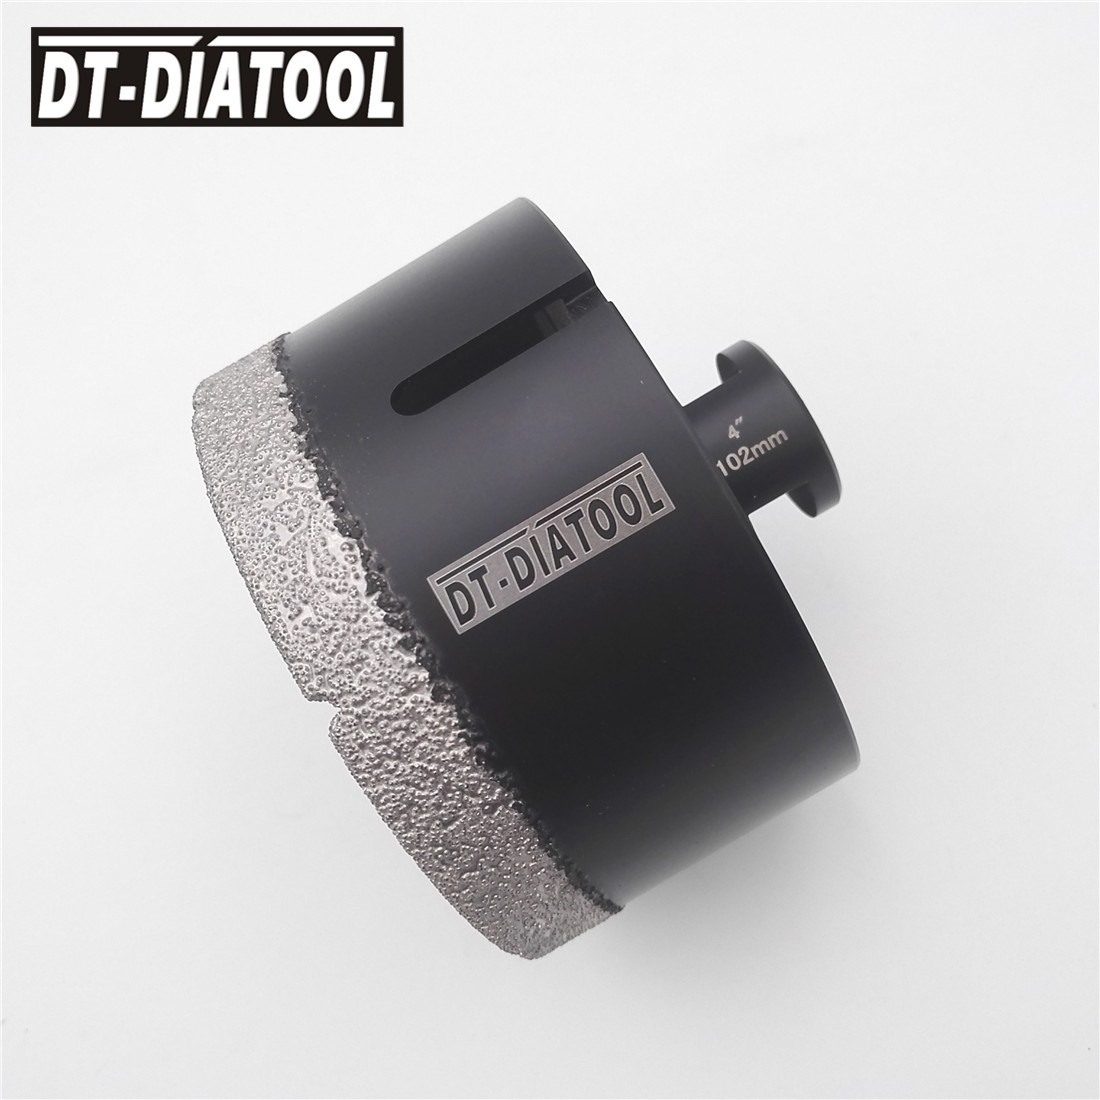 Diameter 102MM 4 Vacuum brazed diamond Dry drill core bits5/8-11 thread Drilling bits hole saw marble granite tile ceramic